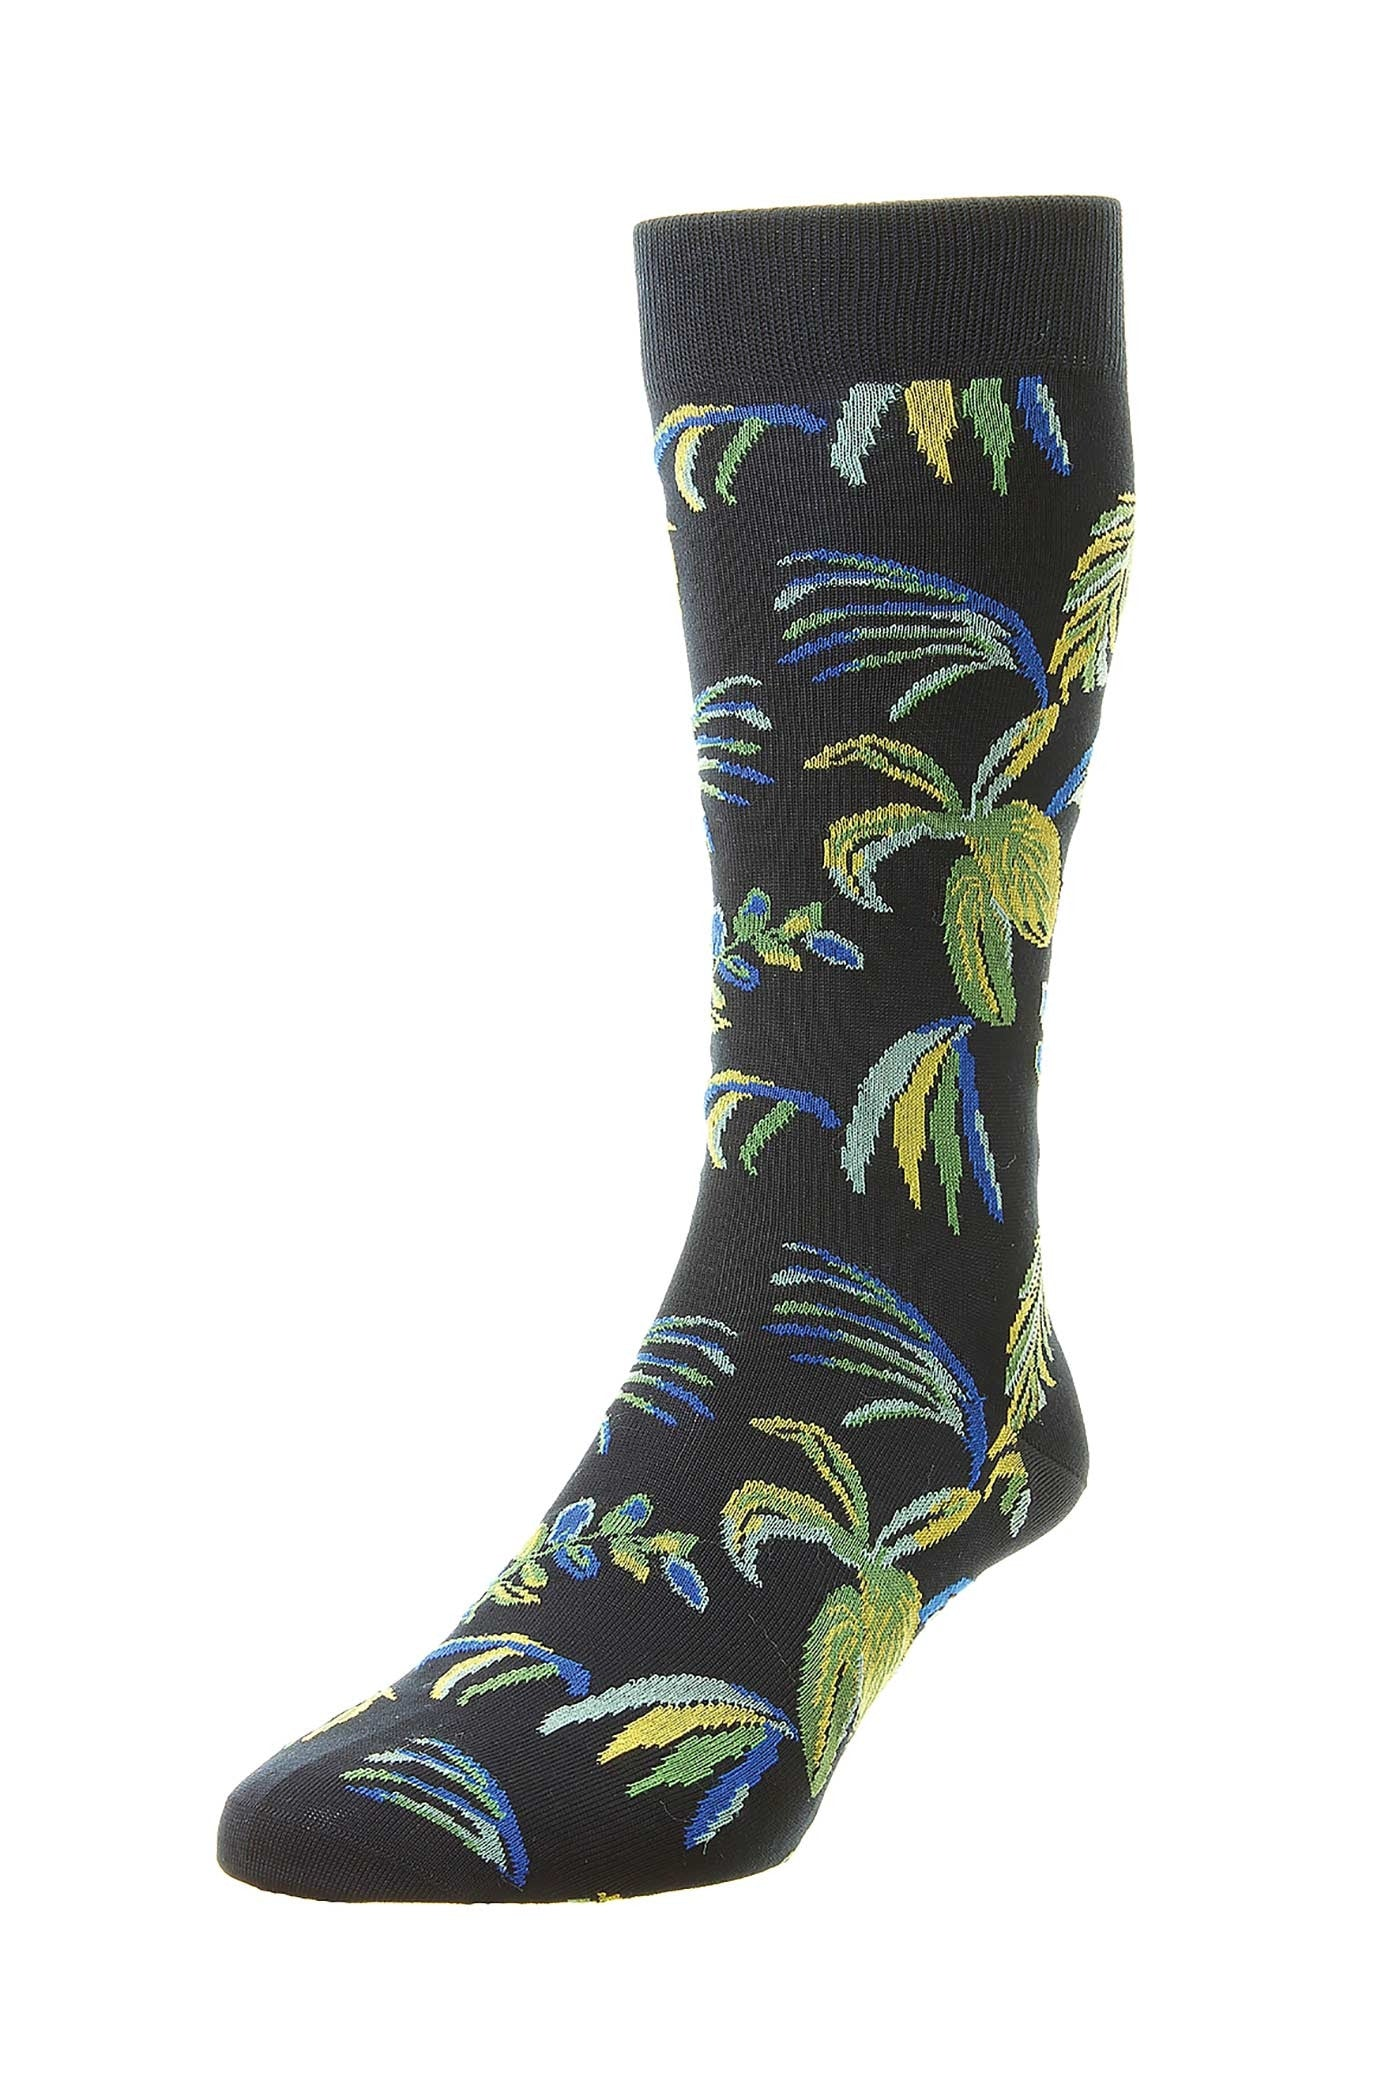 Pantherella Tuvalu - Tropical Leaves Cotton Lisle Socks